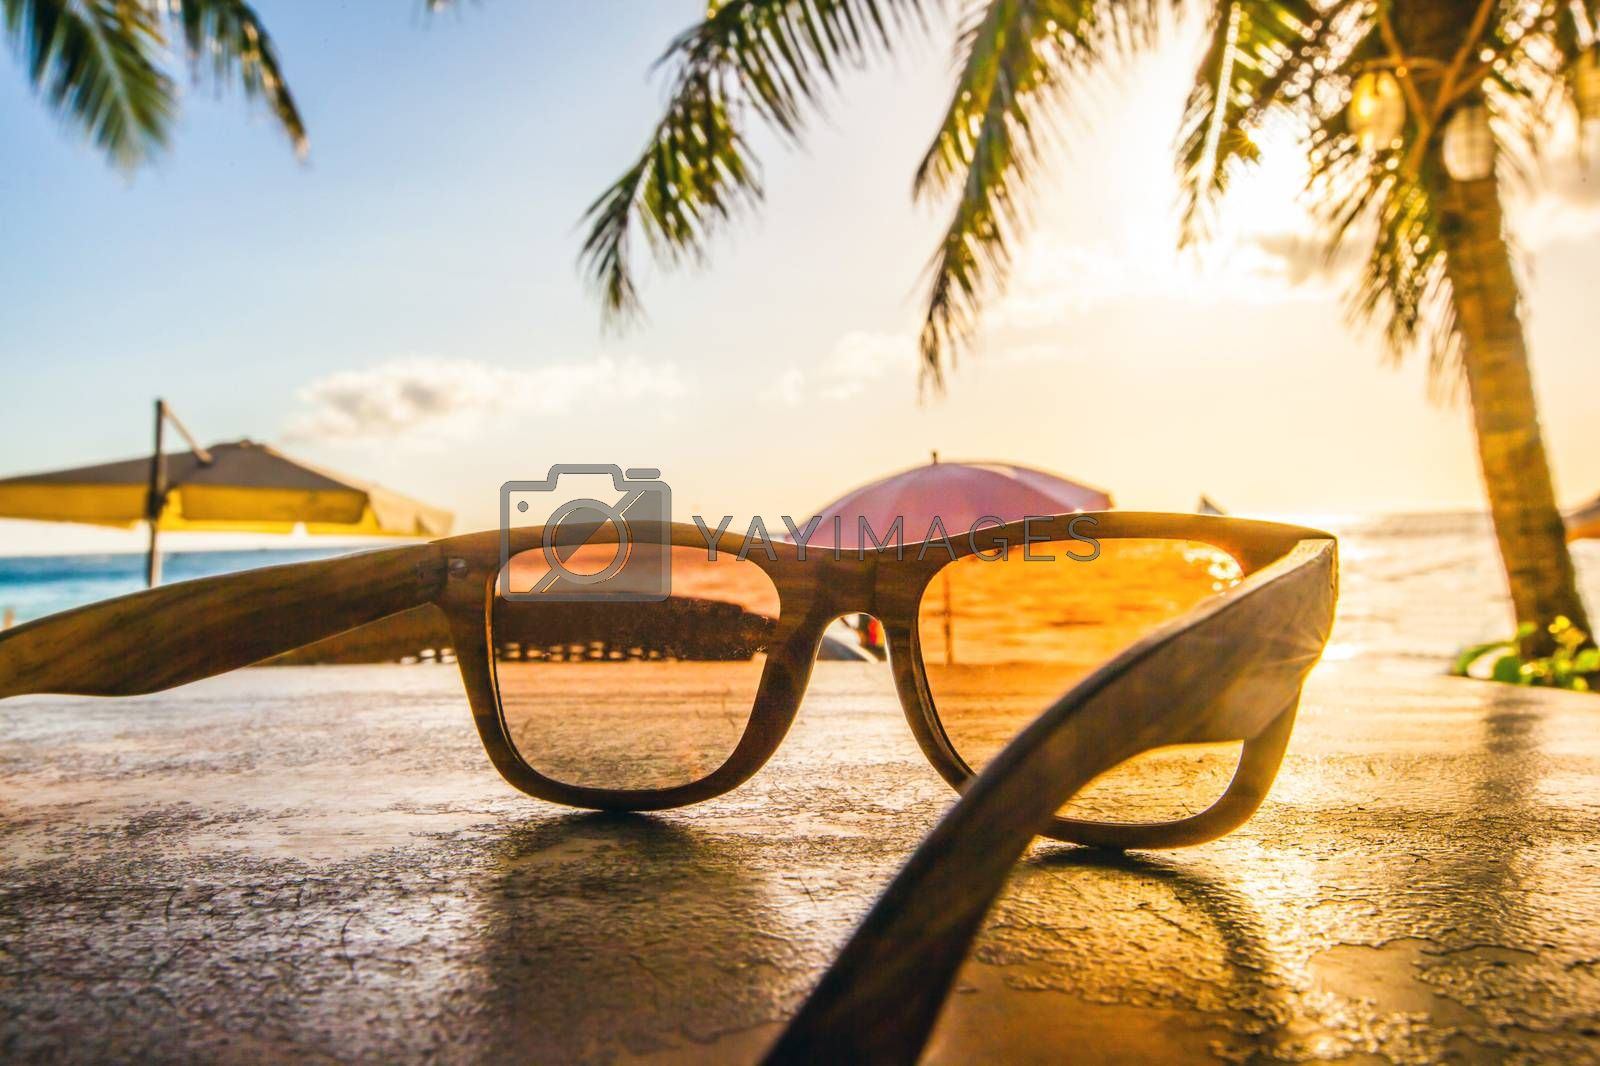 Sunglasses on tropical beach with palms at sunset